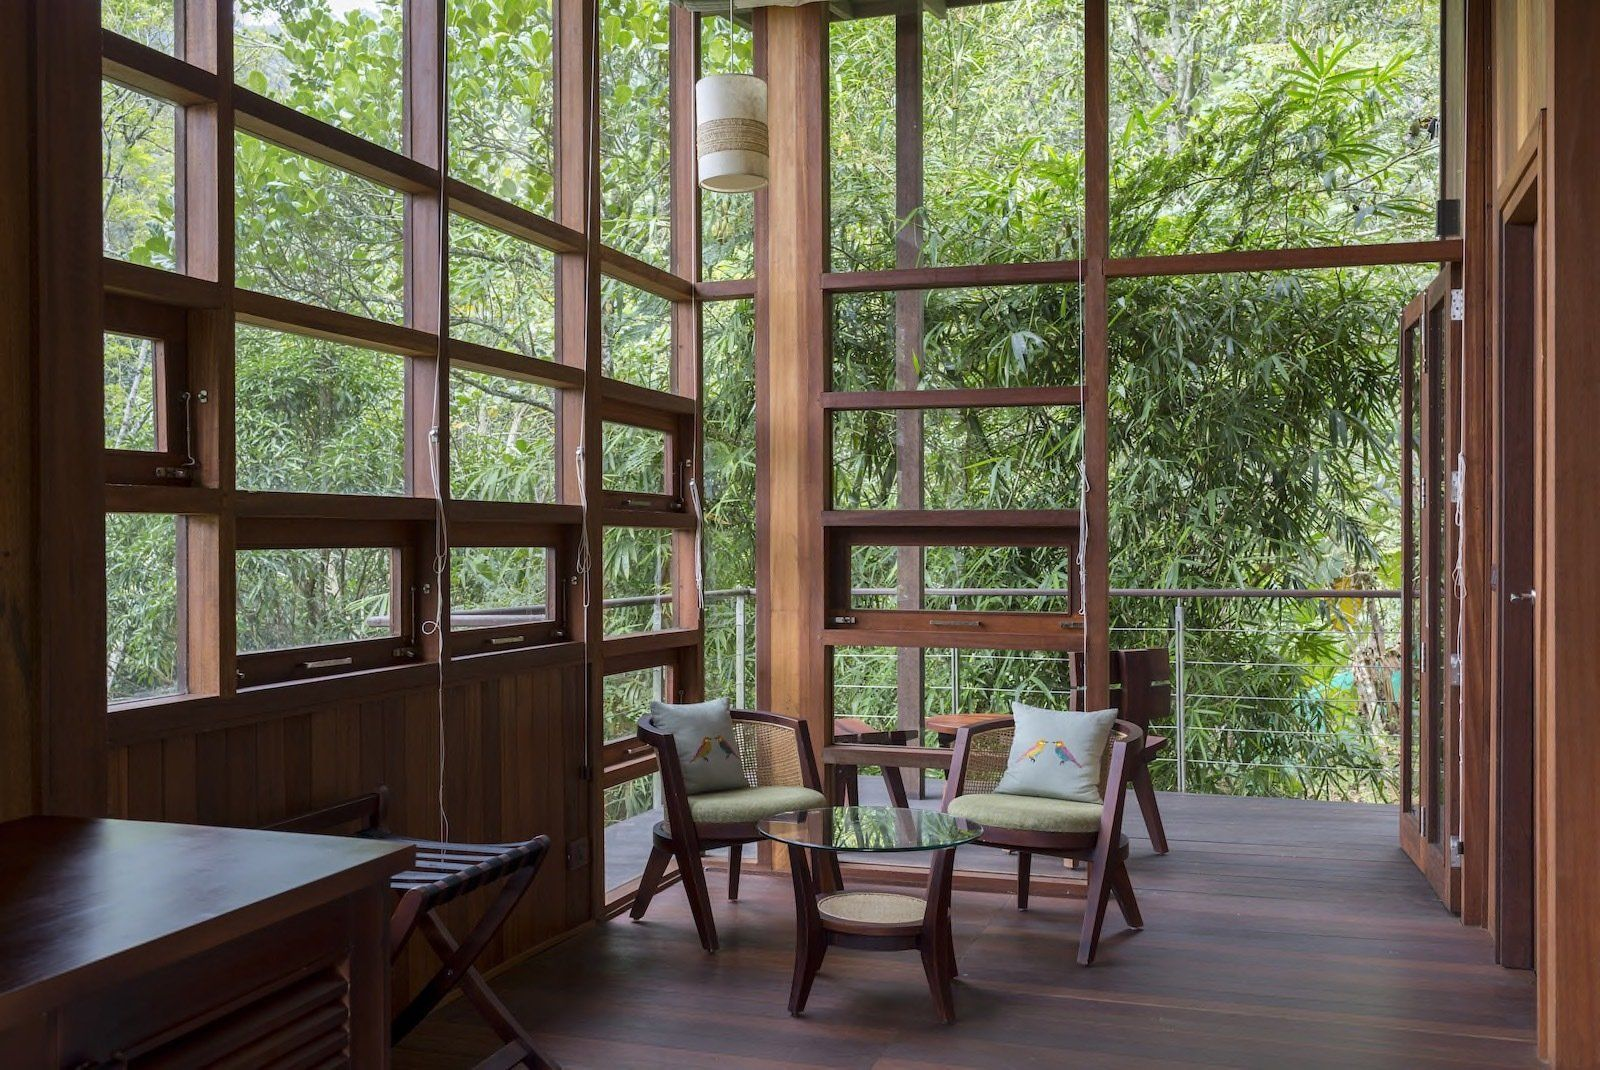 Cooling breezes can be let in through the operable glass windows travel cabin india also these perched cabins will stimulate all your senses rh pinterest